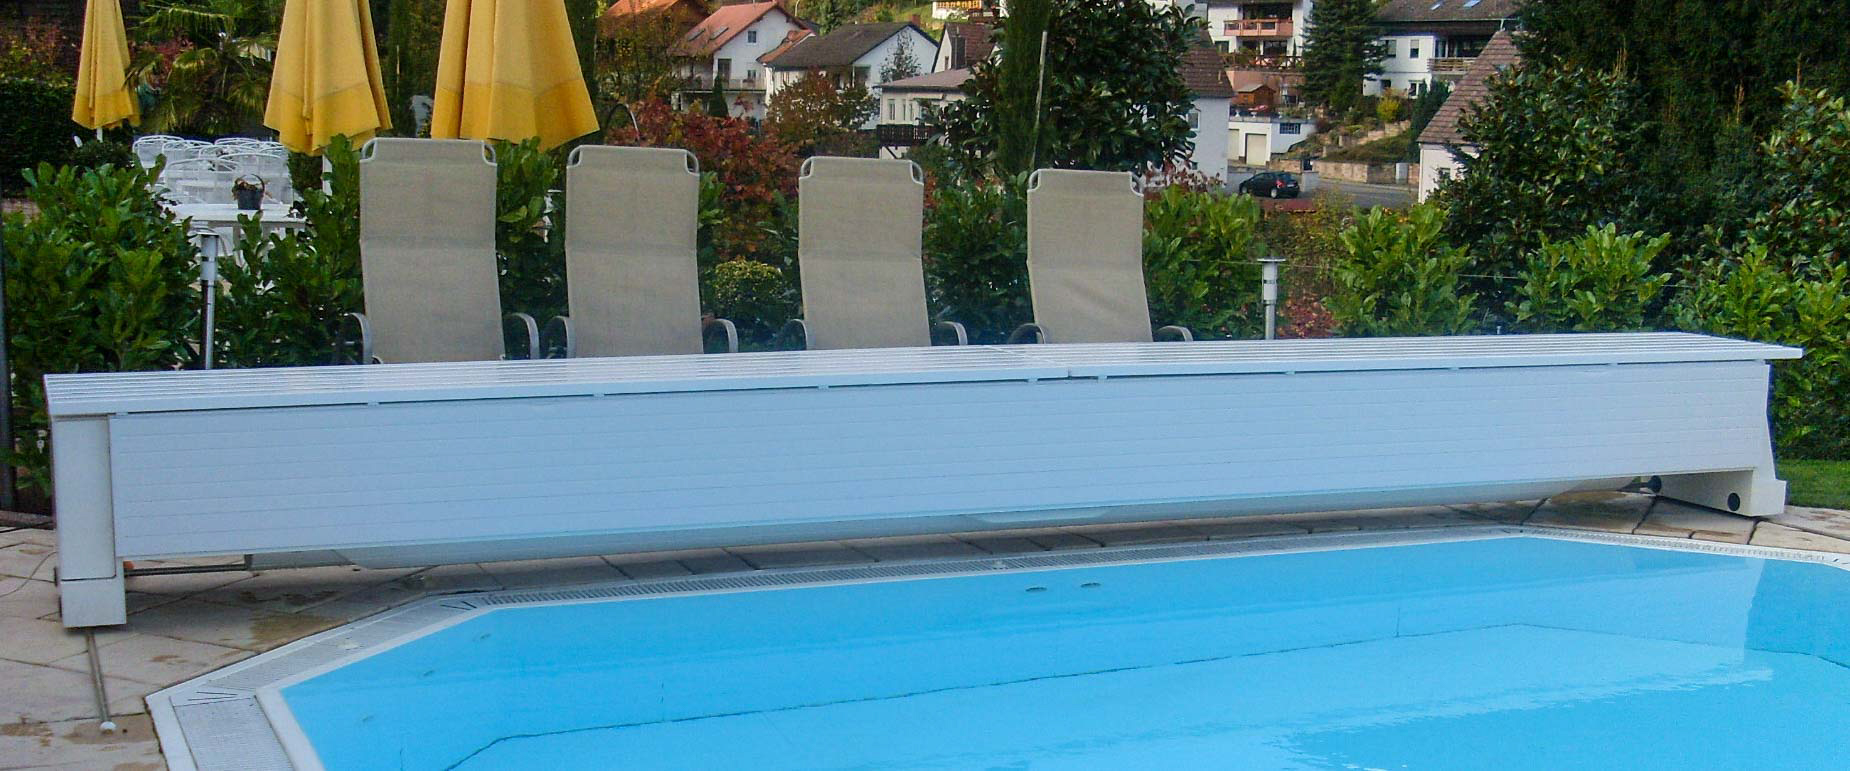 Habillage piscine cheap amenagement with habillage piscine top lit piscine safi vincent - Habillage piscine hors sol tubulaire ...